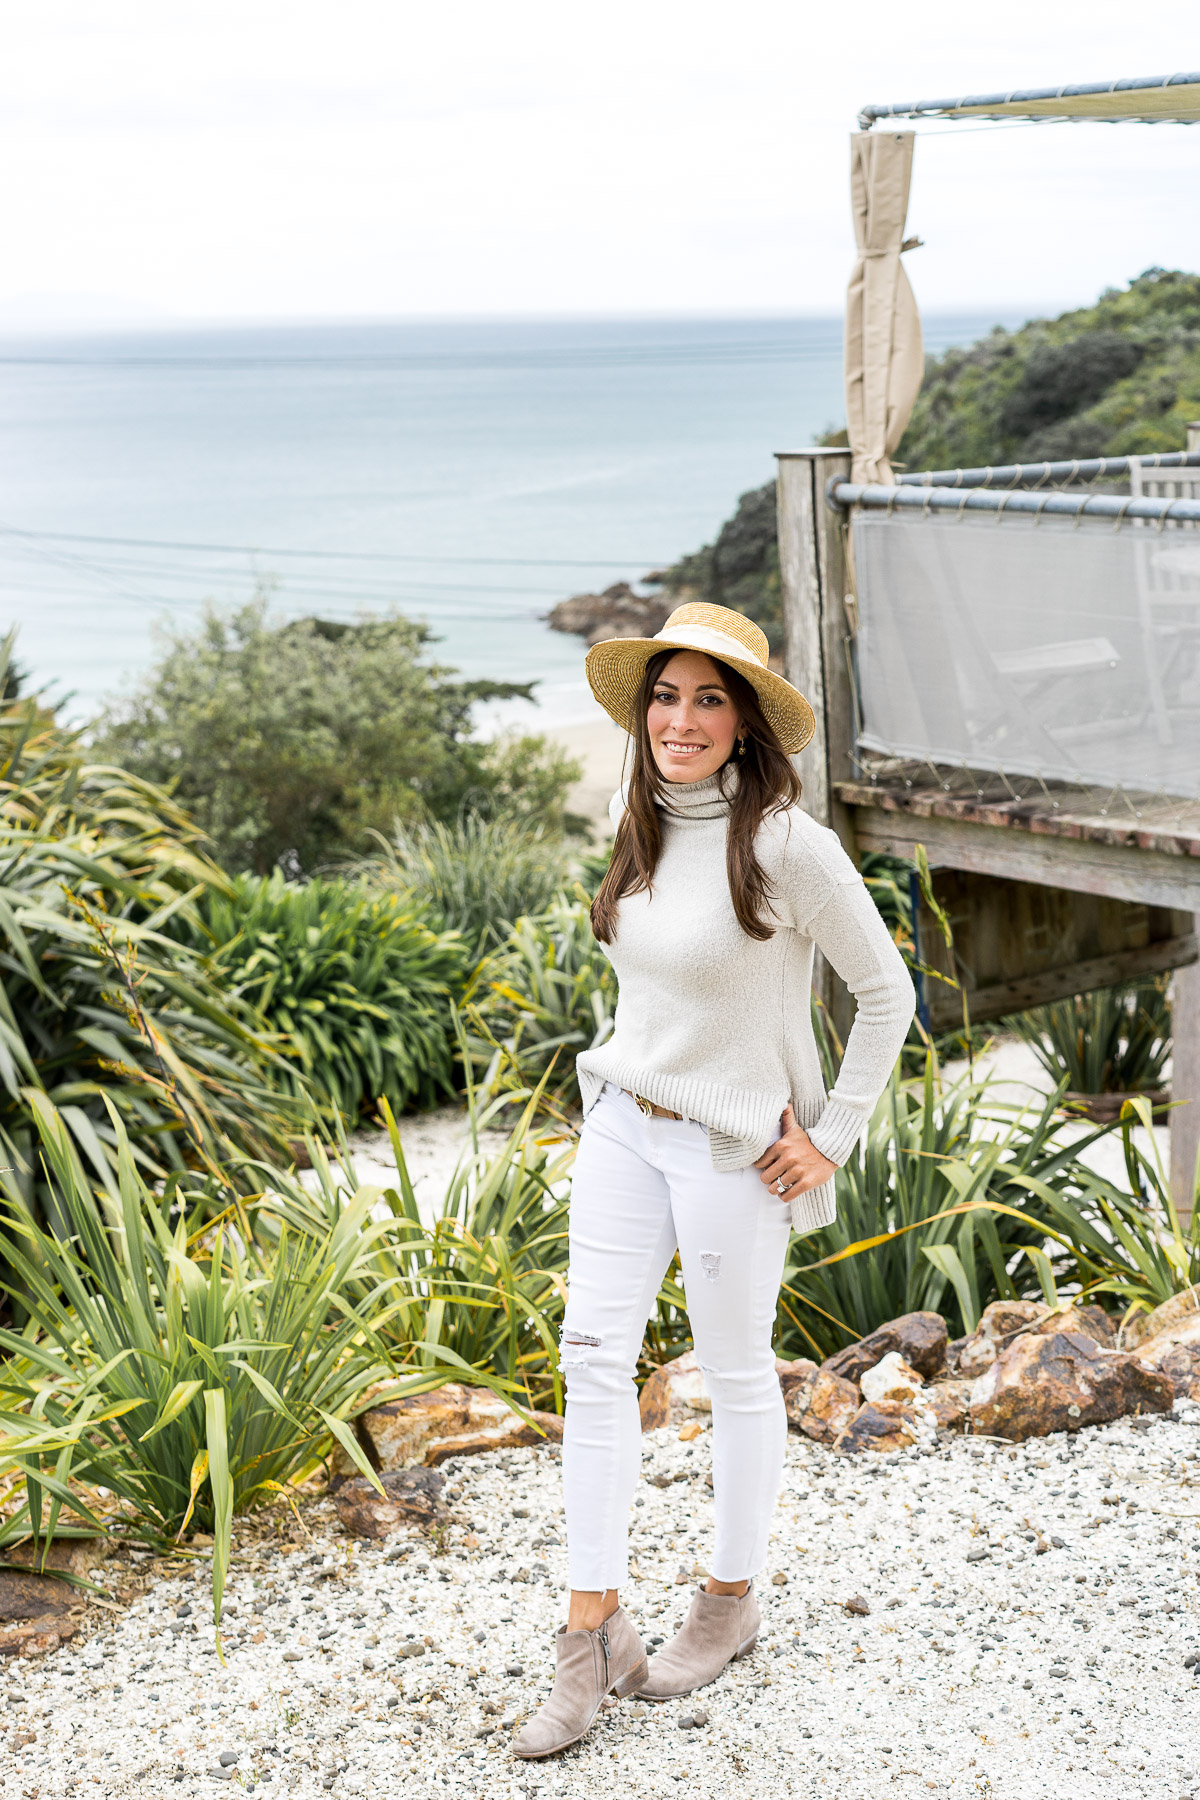 Blogger Amanda from A Glam Lifestyle shares her Waikeke Island itinerary including her stay at the Boatshed boutique hotel